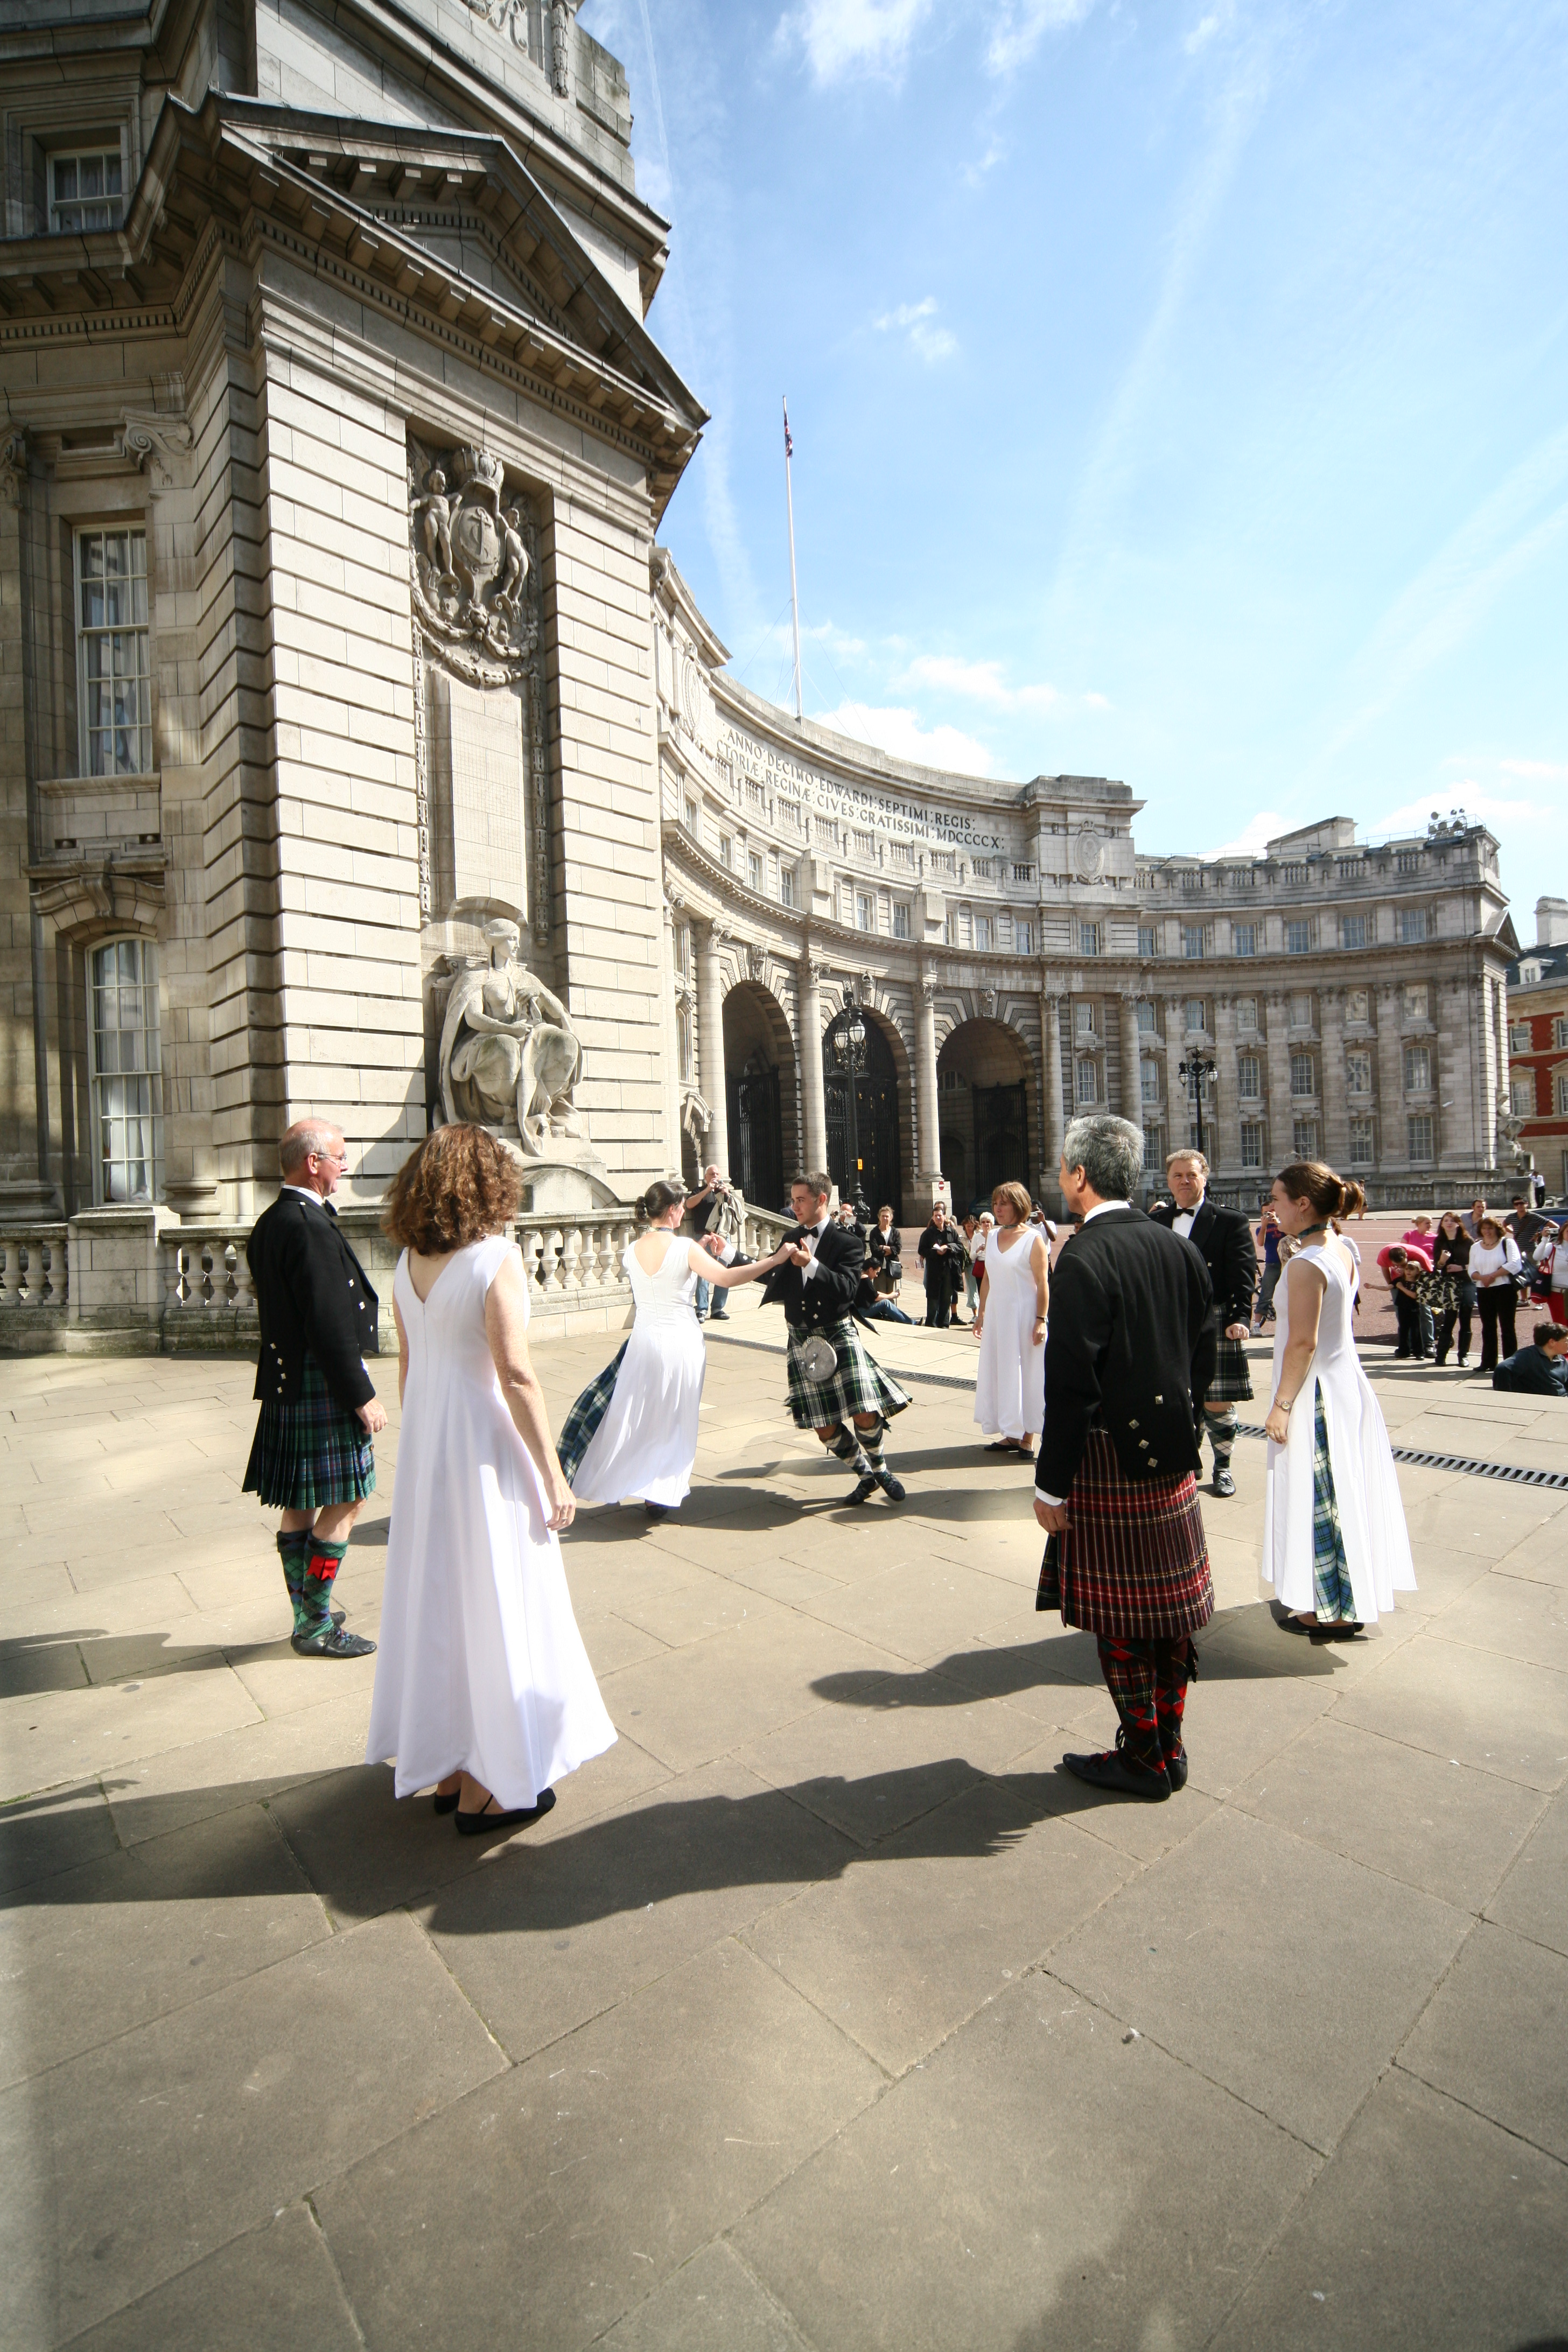 COPYRIGHT PICTURE : PICTURE PARTNERSHIP. (912109-E) PICTURE BY : ANDREW DUNSMORE. 14-09-08 GENERAL INFO: Award winning dancers from the London Branch Royal Scottish Country Dance Society launched Dance Scottish Week, ( 12th - 20th Sept.) dancing eight Eightsome Reels around eight London famous landmarks, including Big Ben, Tower Bridge, Millenium Bridge and even crossing the Mall to perform in St James' Park Bandstand. Scottish Country Dancing for Fun, Fitness and For Friendship PICTURE SHOWS: For further information please contact : Michael Nolan on 07813 363076.